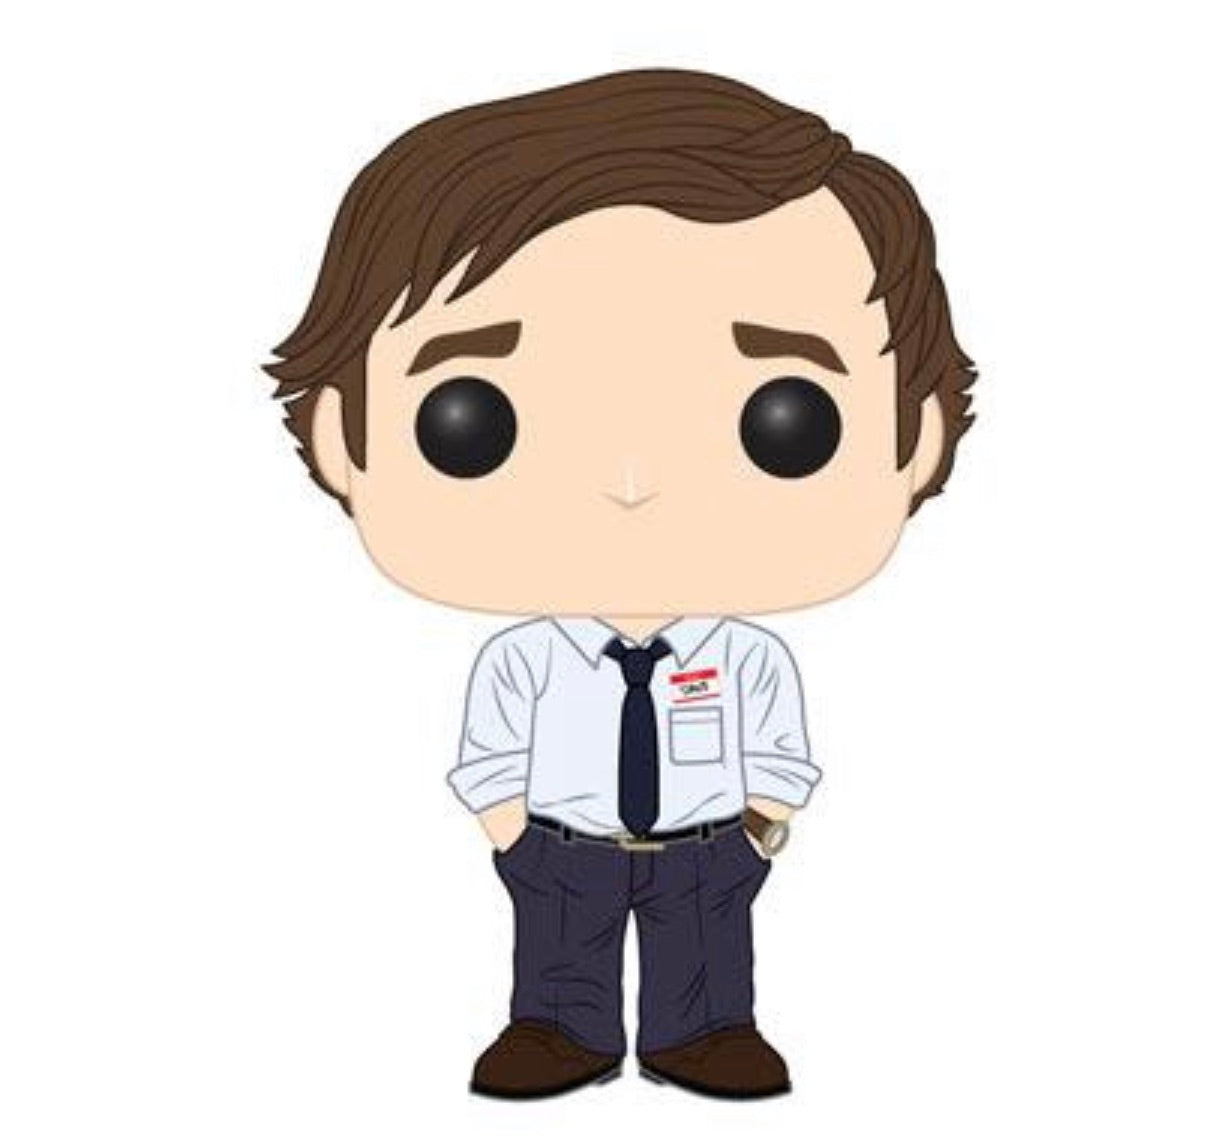 THE OFFICE FUNKO POP! JIM HALPERT (PRE-ORDER)